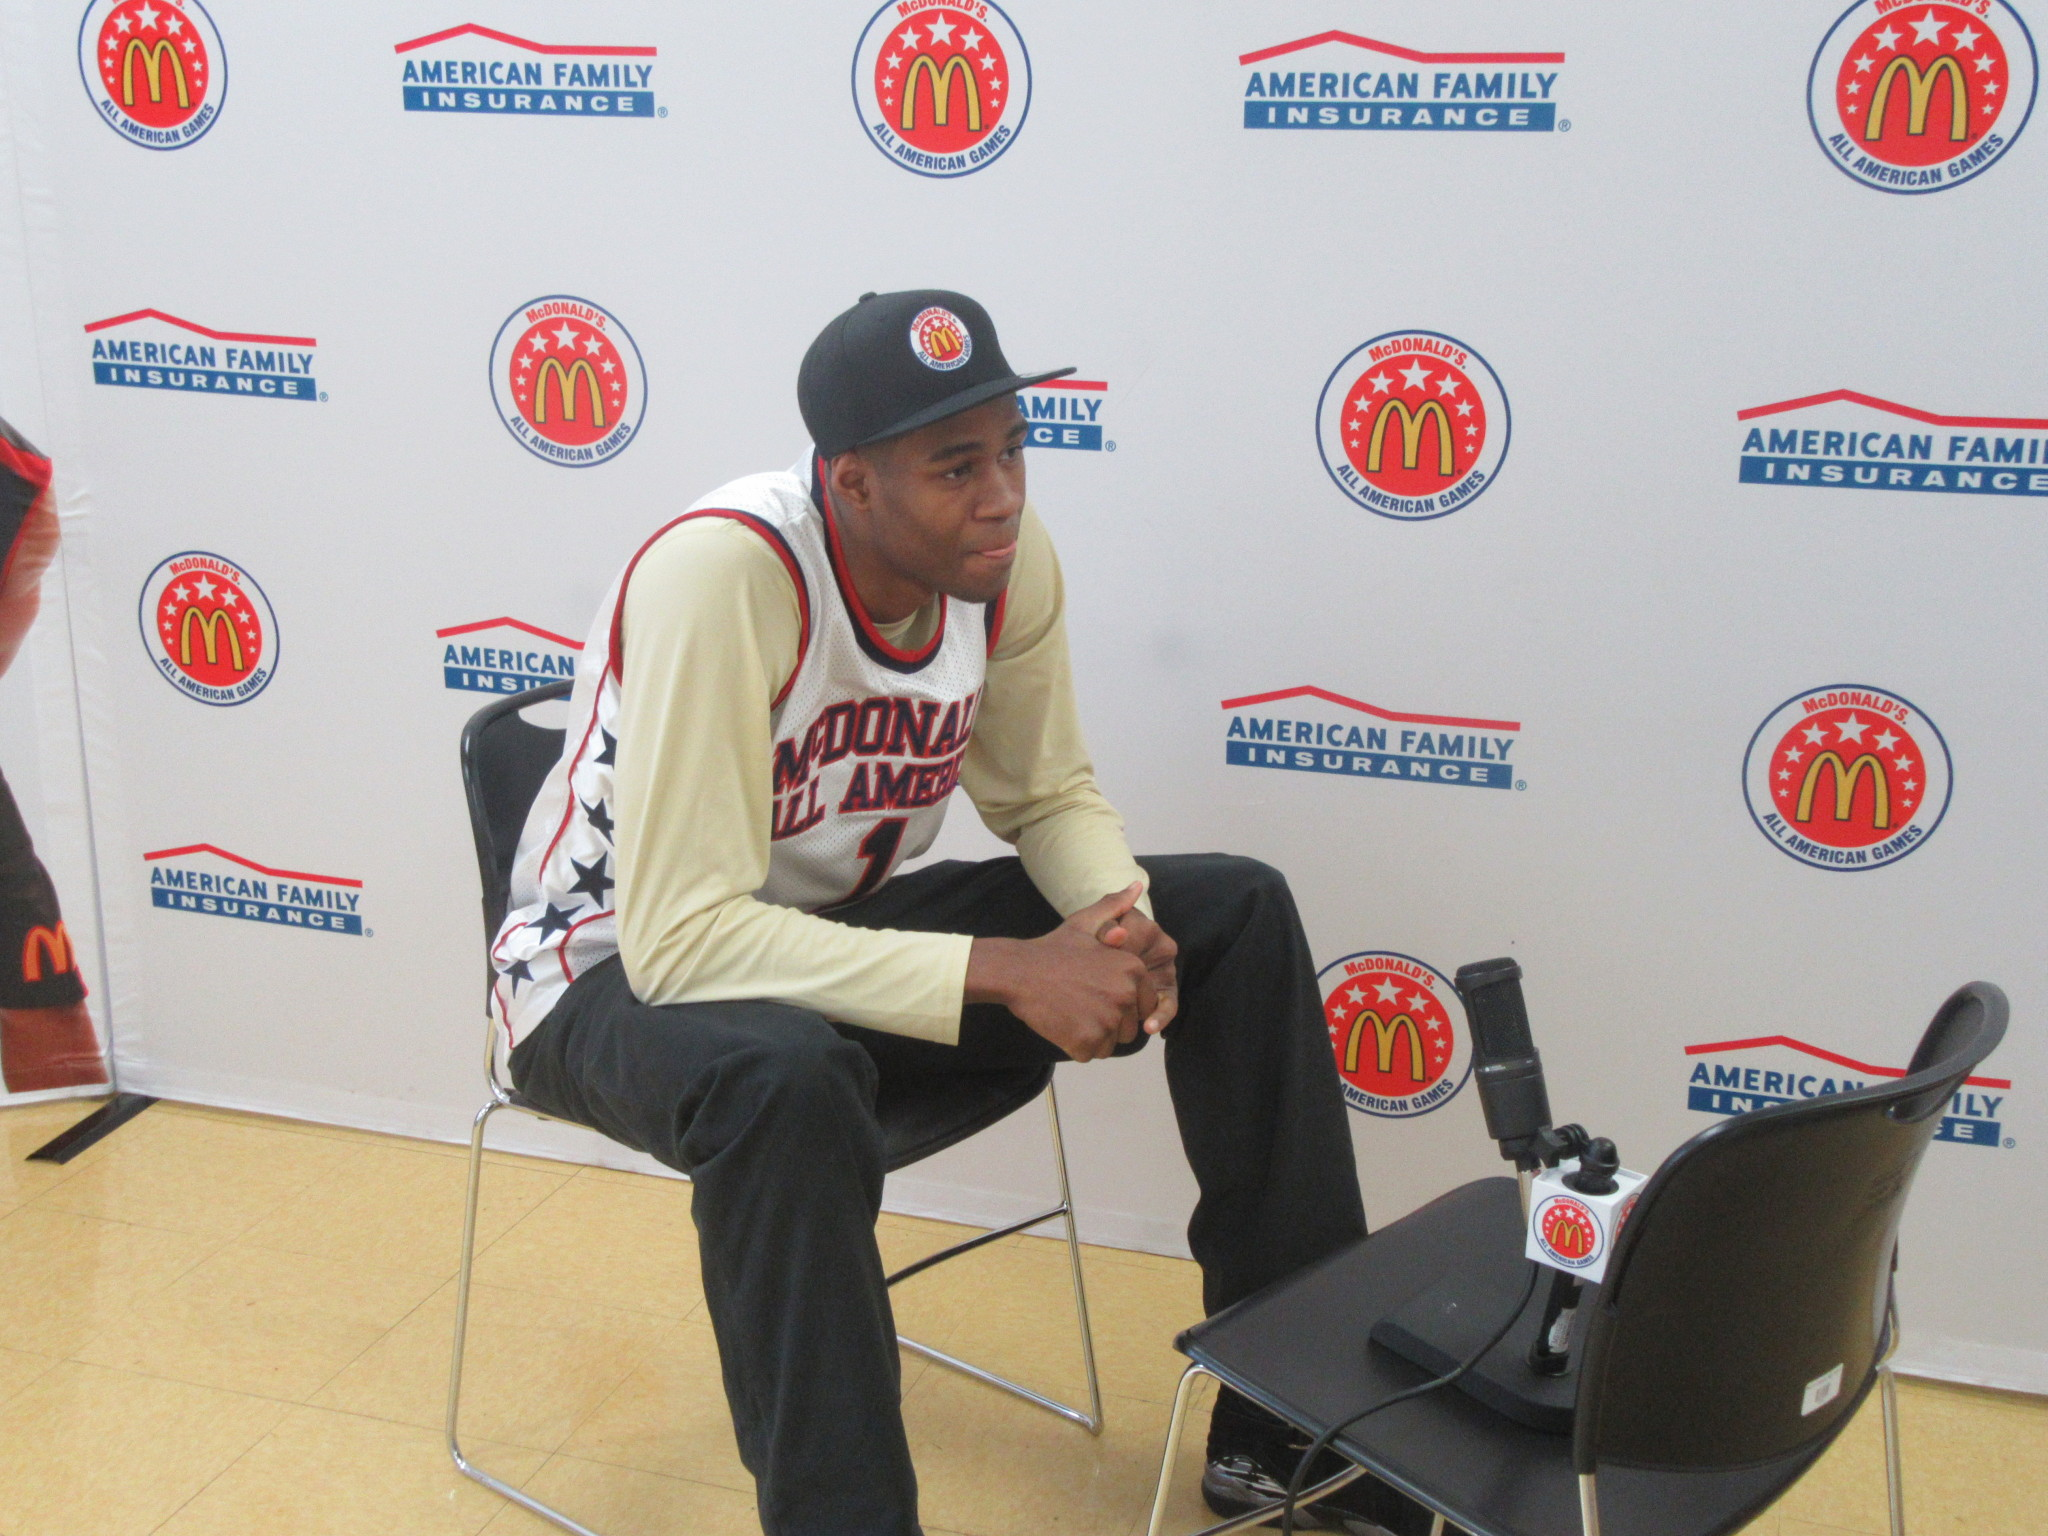 V.J. King Jr. accomplished a dream with McDonald's AA nod. (Photo: McDonald's All American Game)